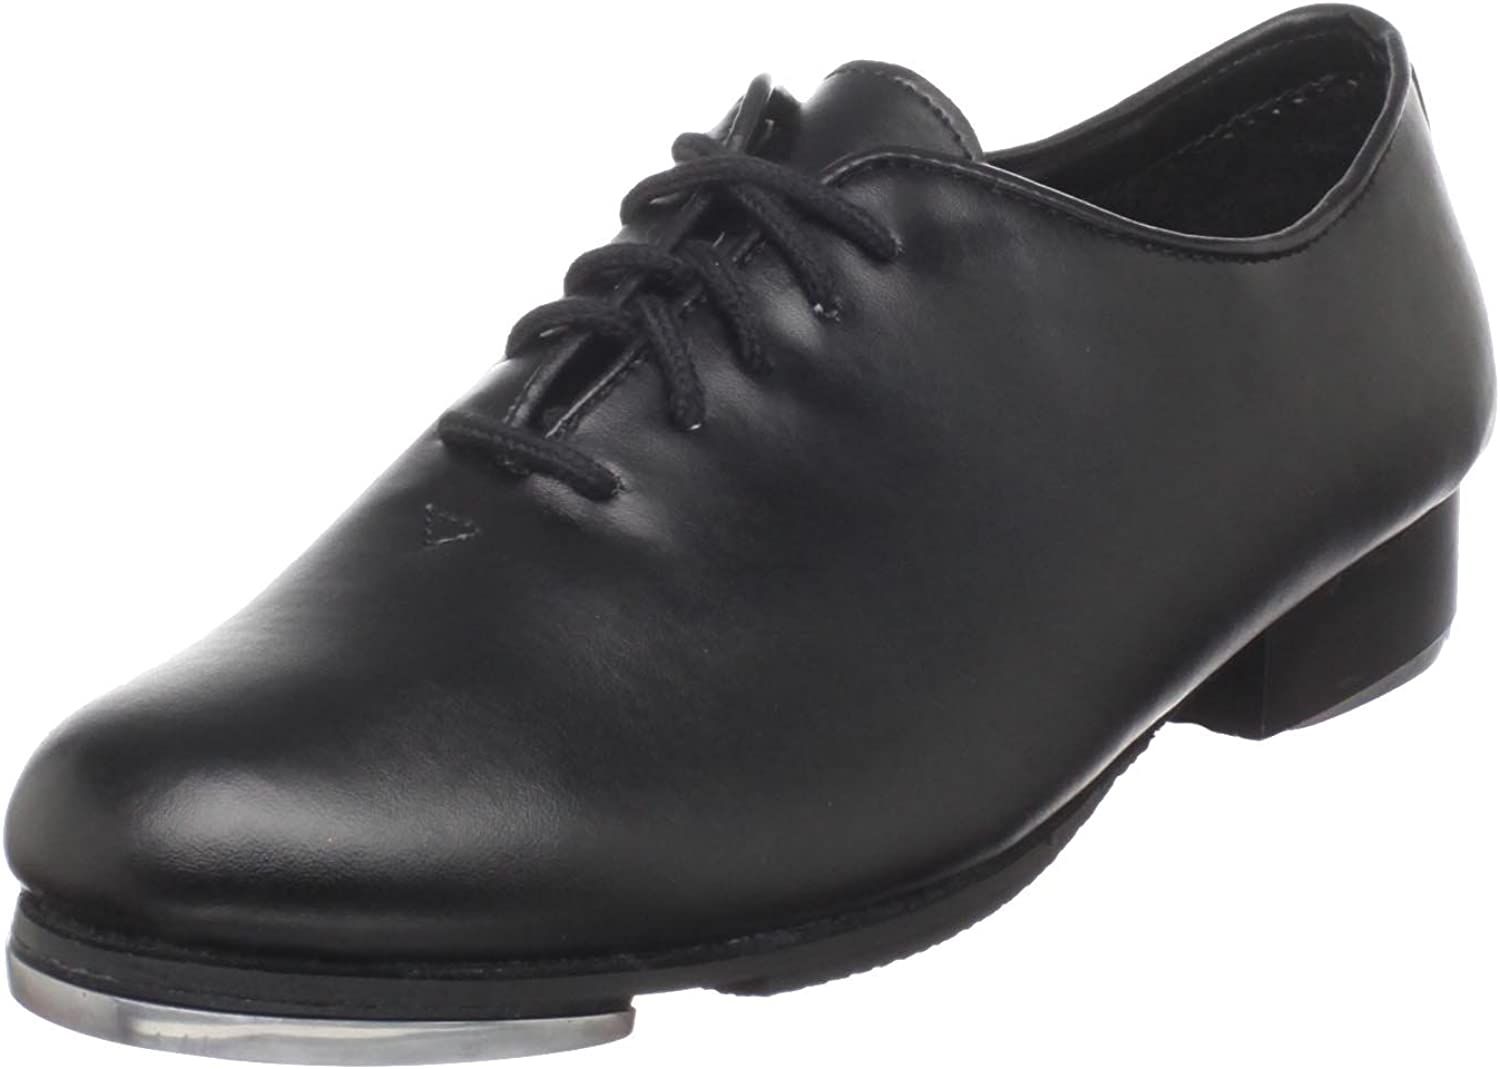 Dance Class Women's PTM101 Full Sole Jazz Tap Oxford shoes